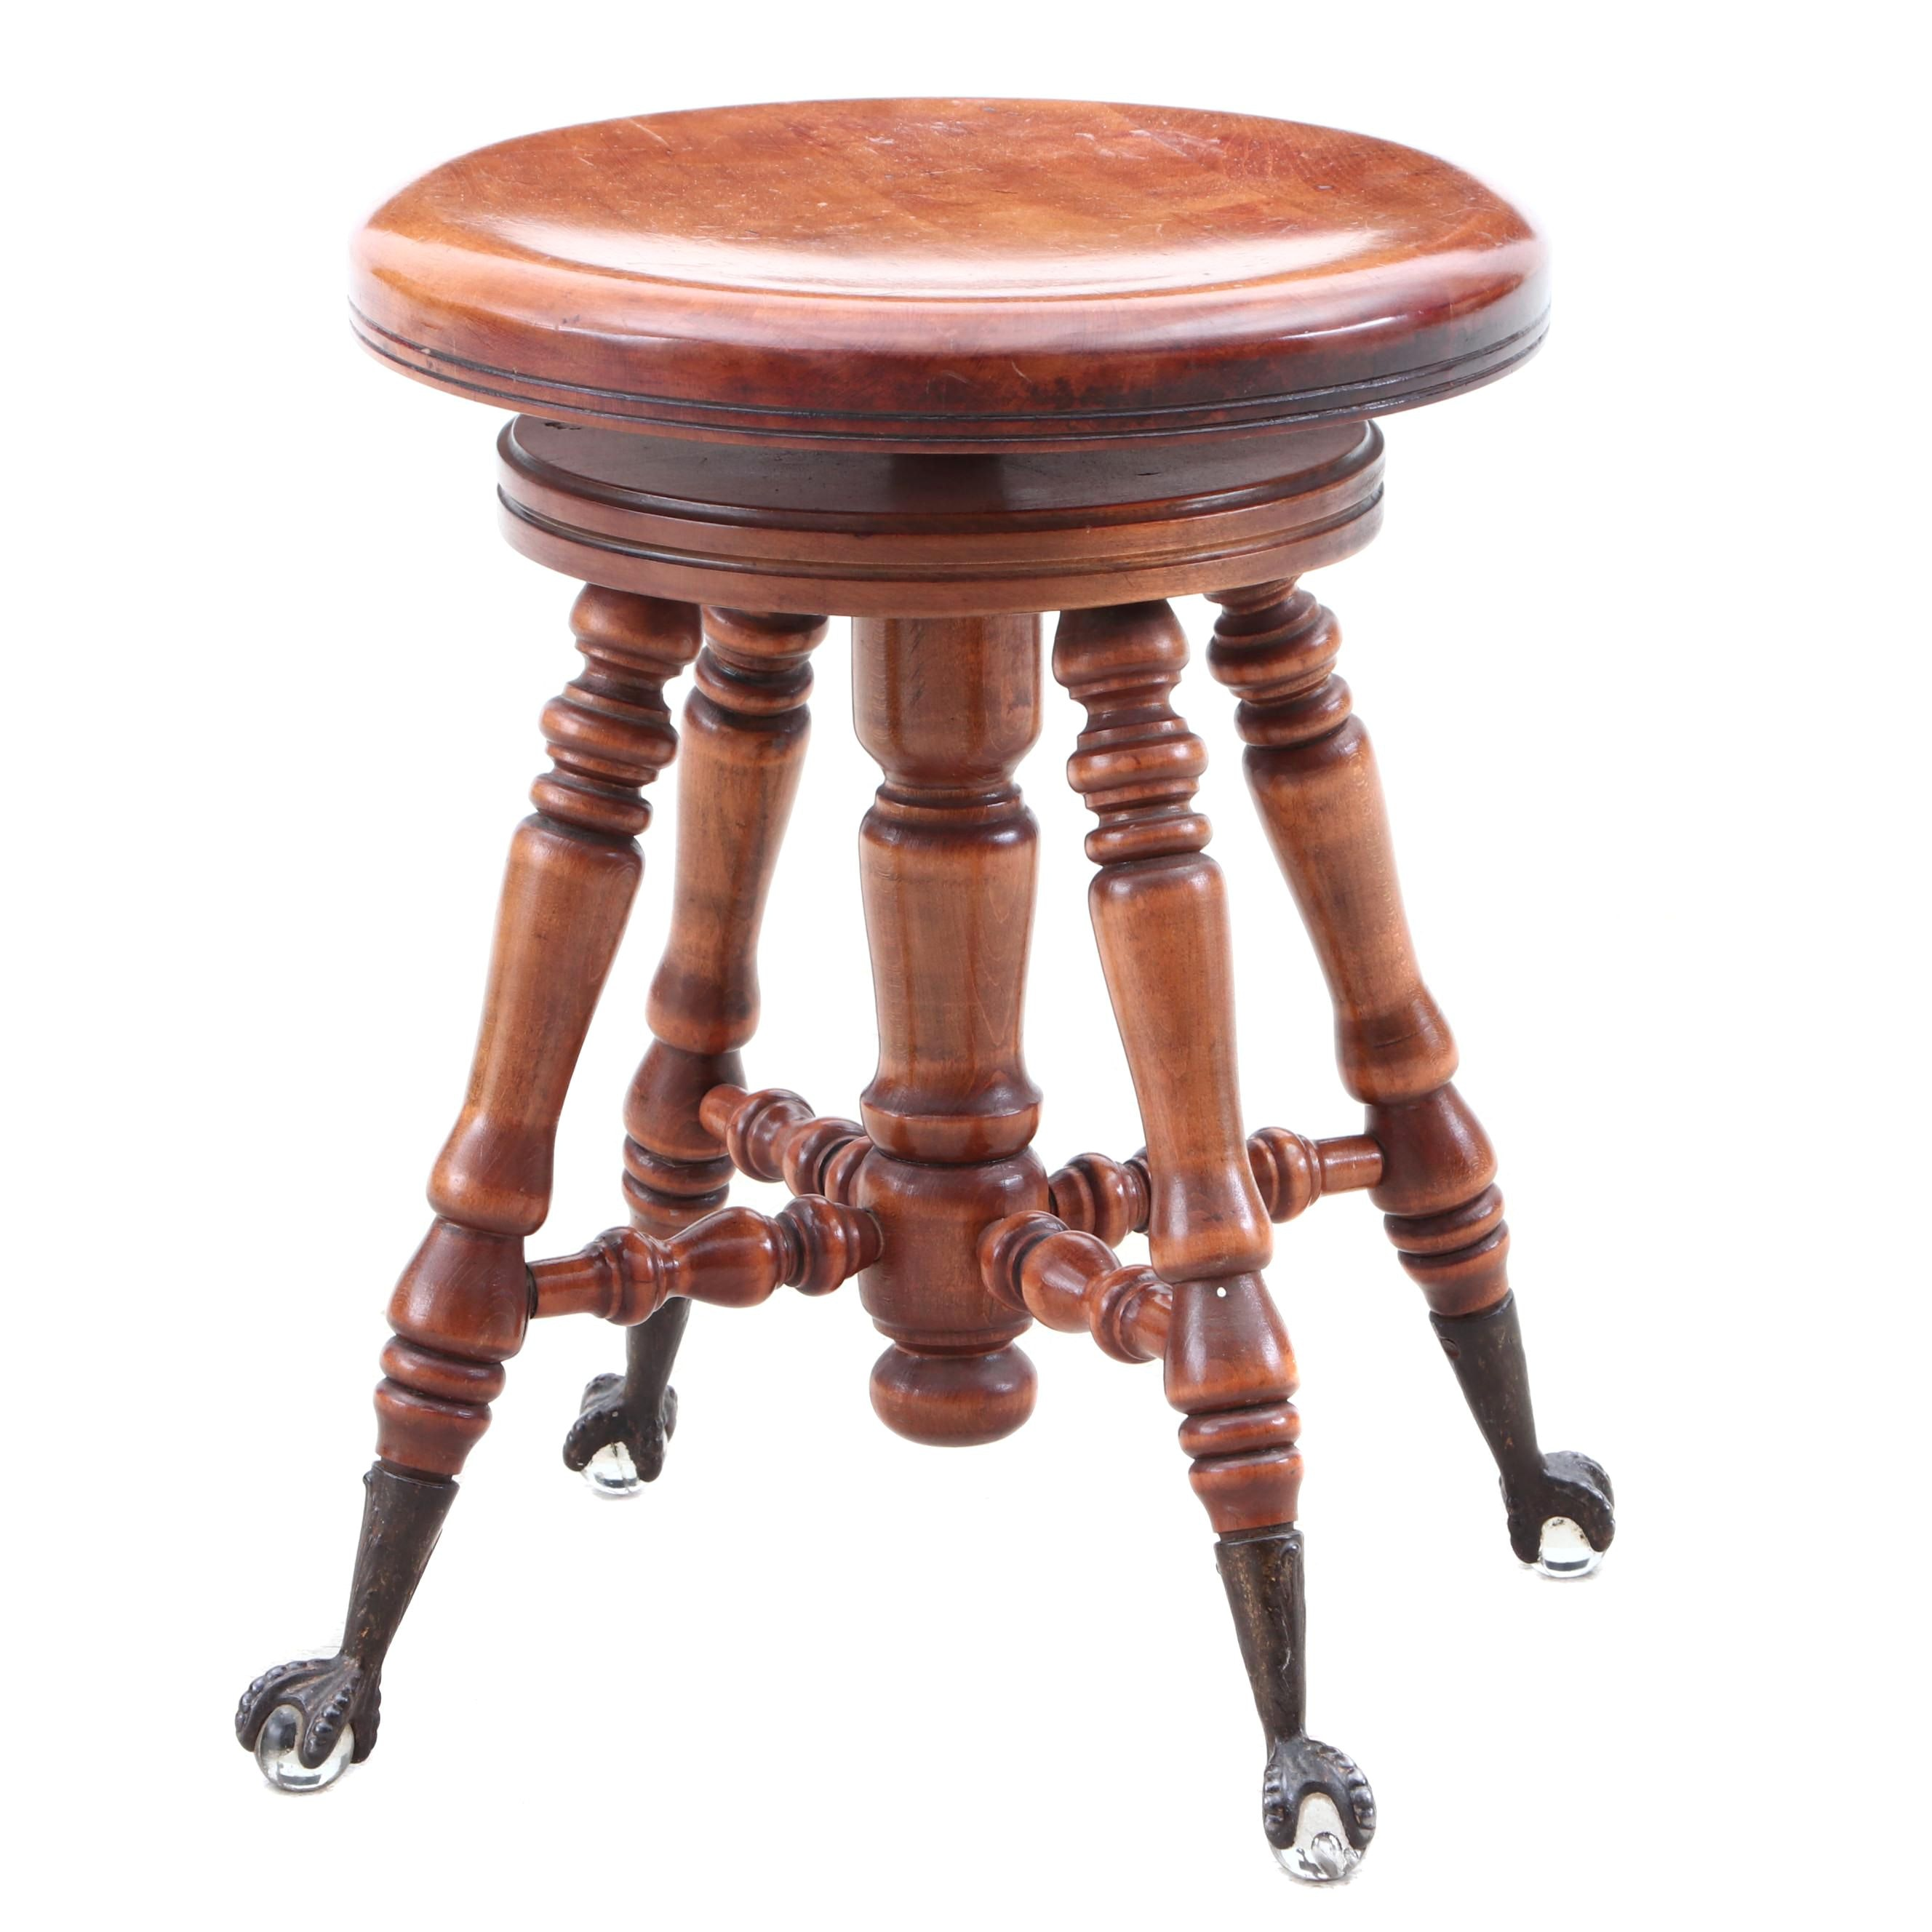 Late Victorian Maple Piano Stool